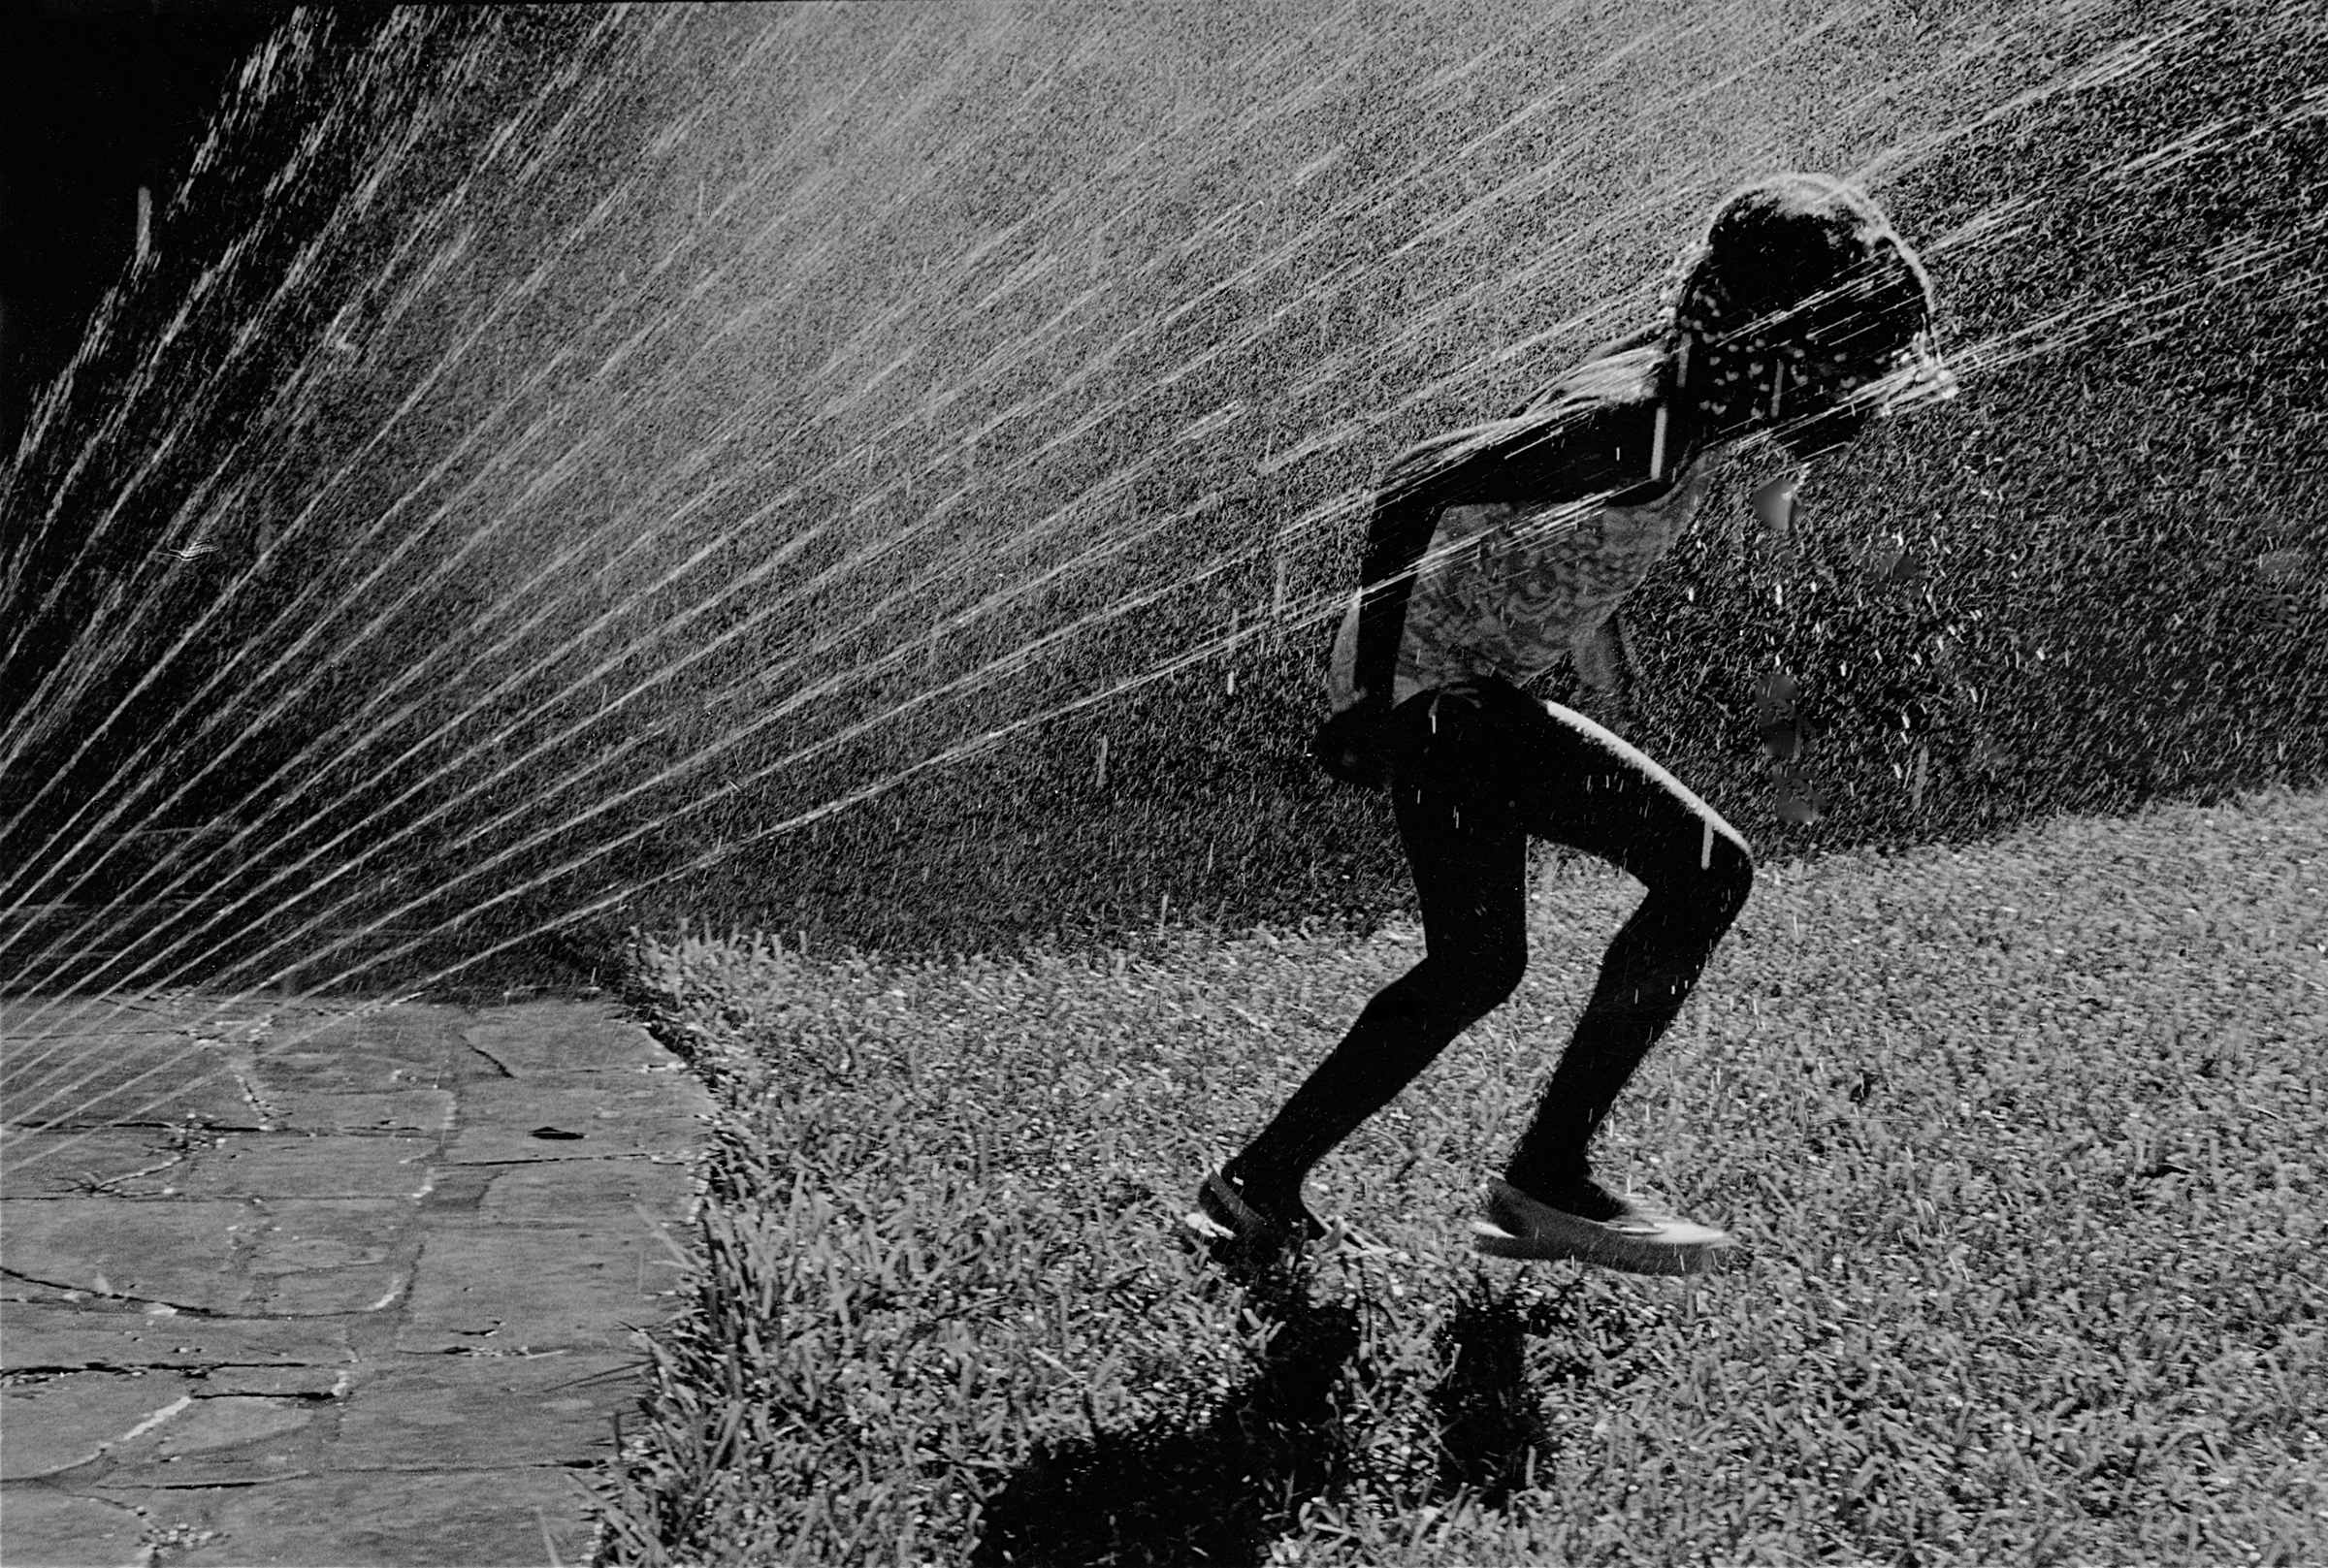 """Hot Summer Days (2011). """"Each day that I wake up, I'm just trying to photograph life as I see it,"""" Hudnall says. """"You have to walk around and respect what is about to happen in front of the camera. It's a sacred moment."""""""